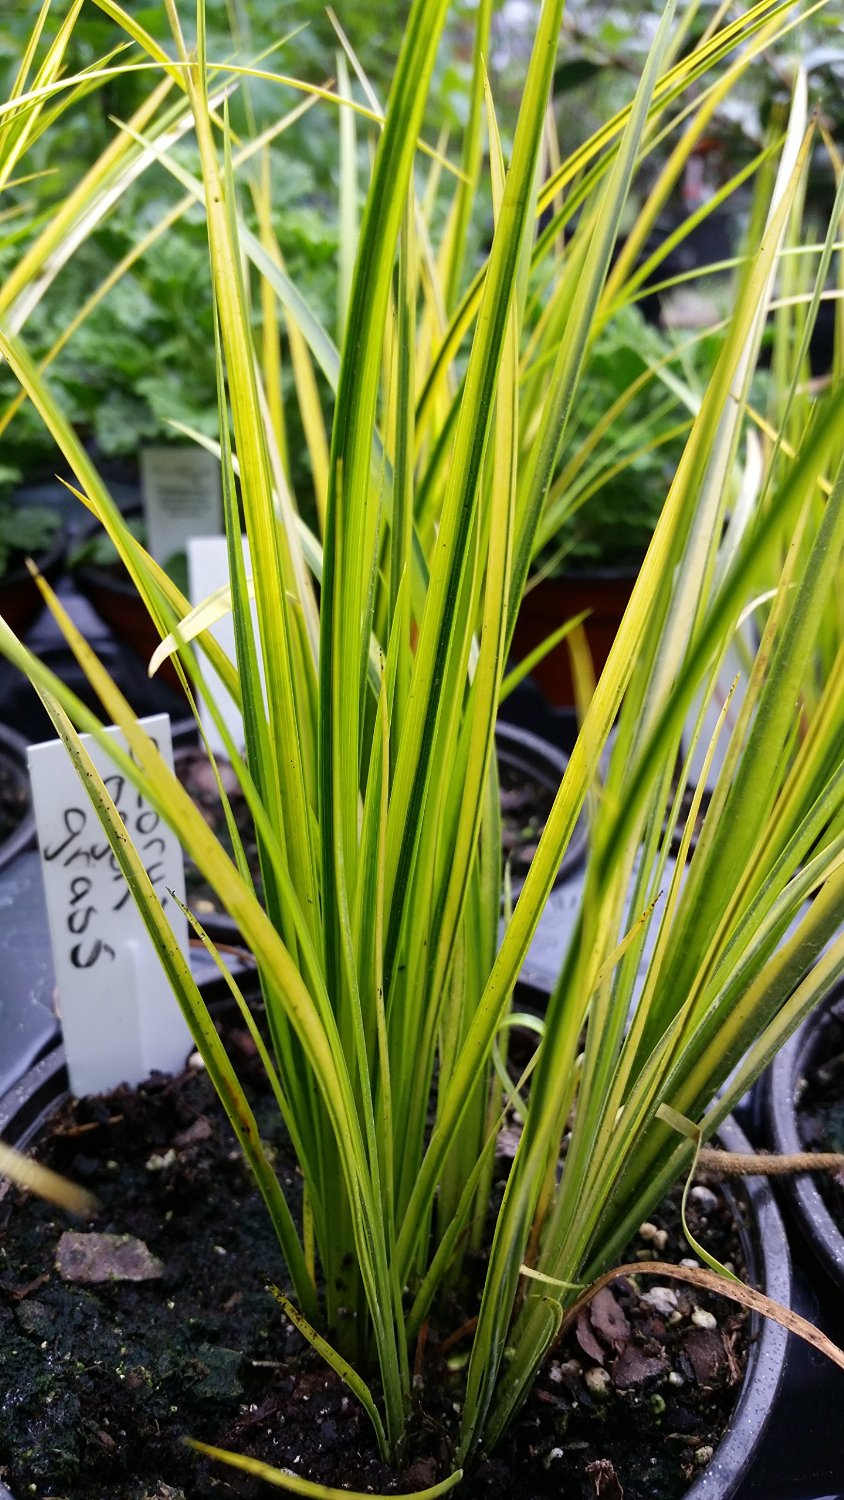 1 Gallon Pot: Grass: Acorus gramineus 'Ogon' Golden Variegated Sweet Flag , Upright foliage with green and yellow variegation, makes good bog plant, takes moist soil. PIXIESDS_EGN